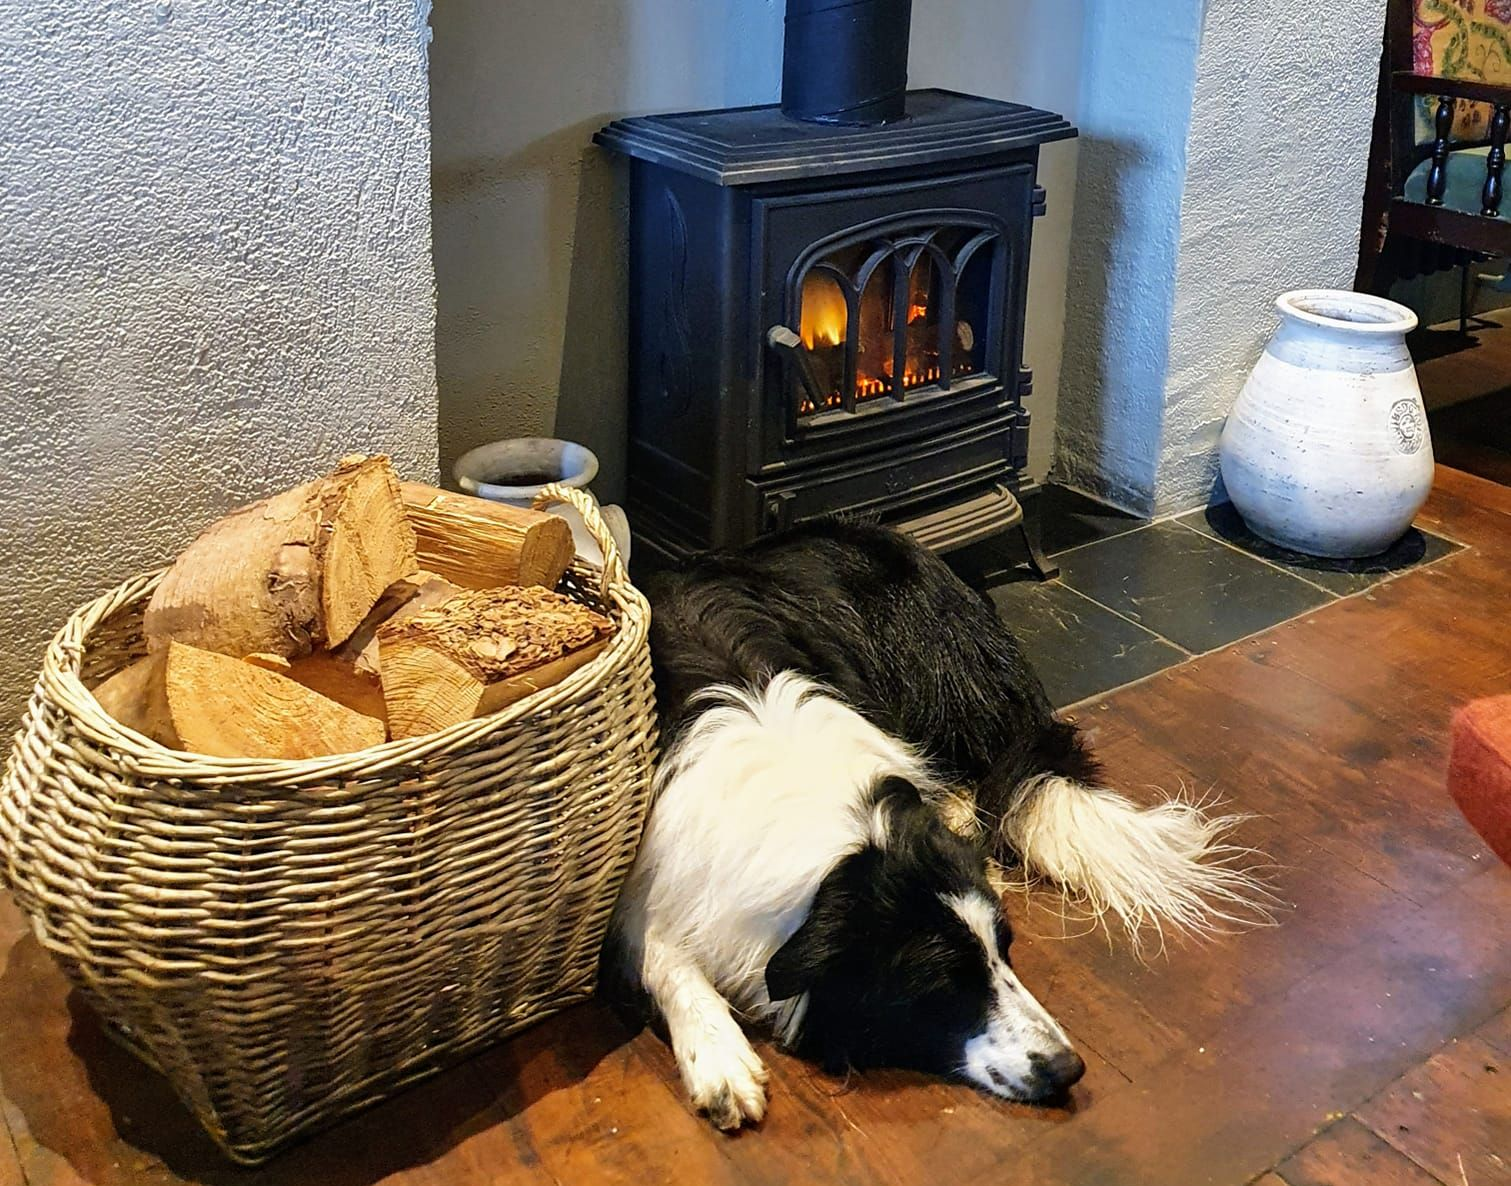 Dogs Welcome in Isle of Man Pubs